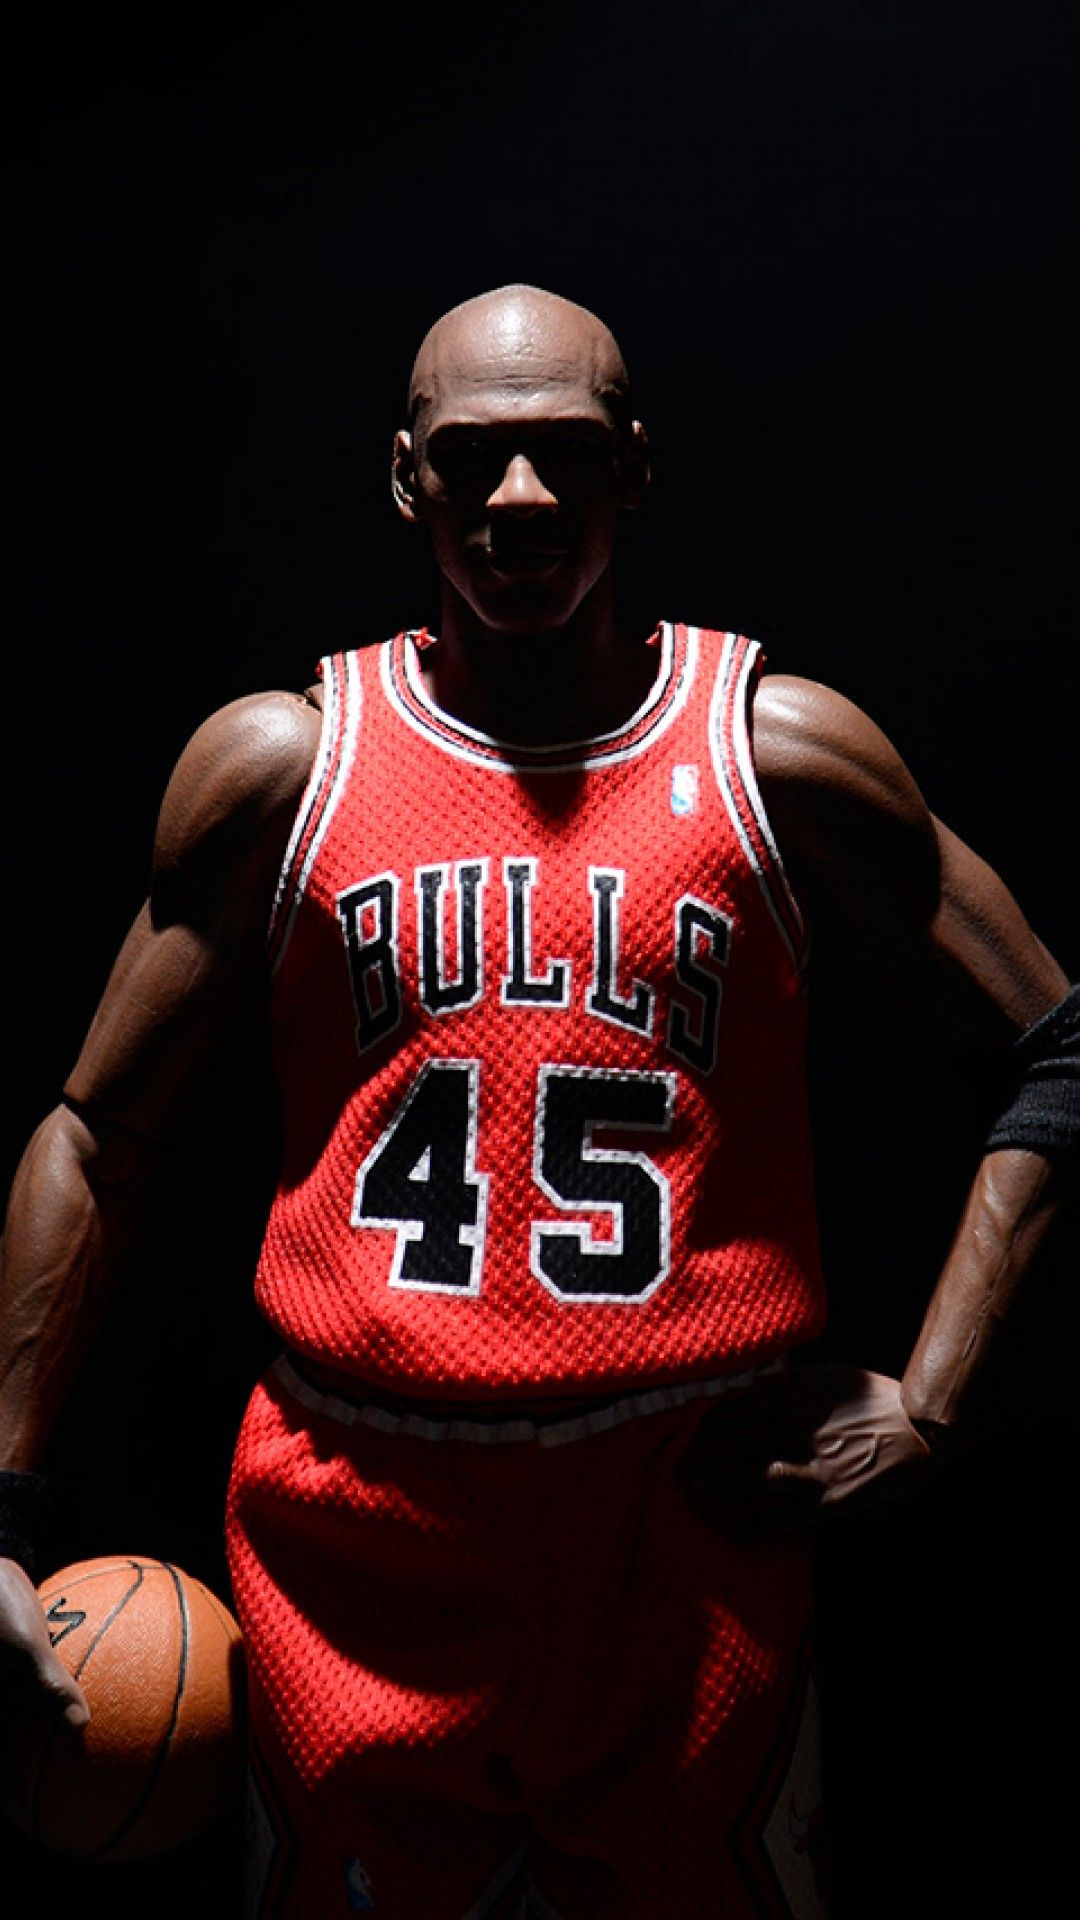 Michael Jordan Hd Wallpapers Pictures to Pin on Pinterest